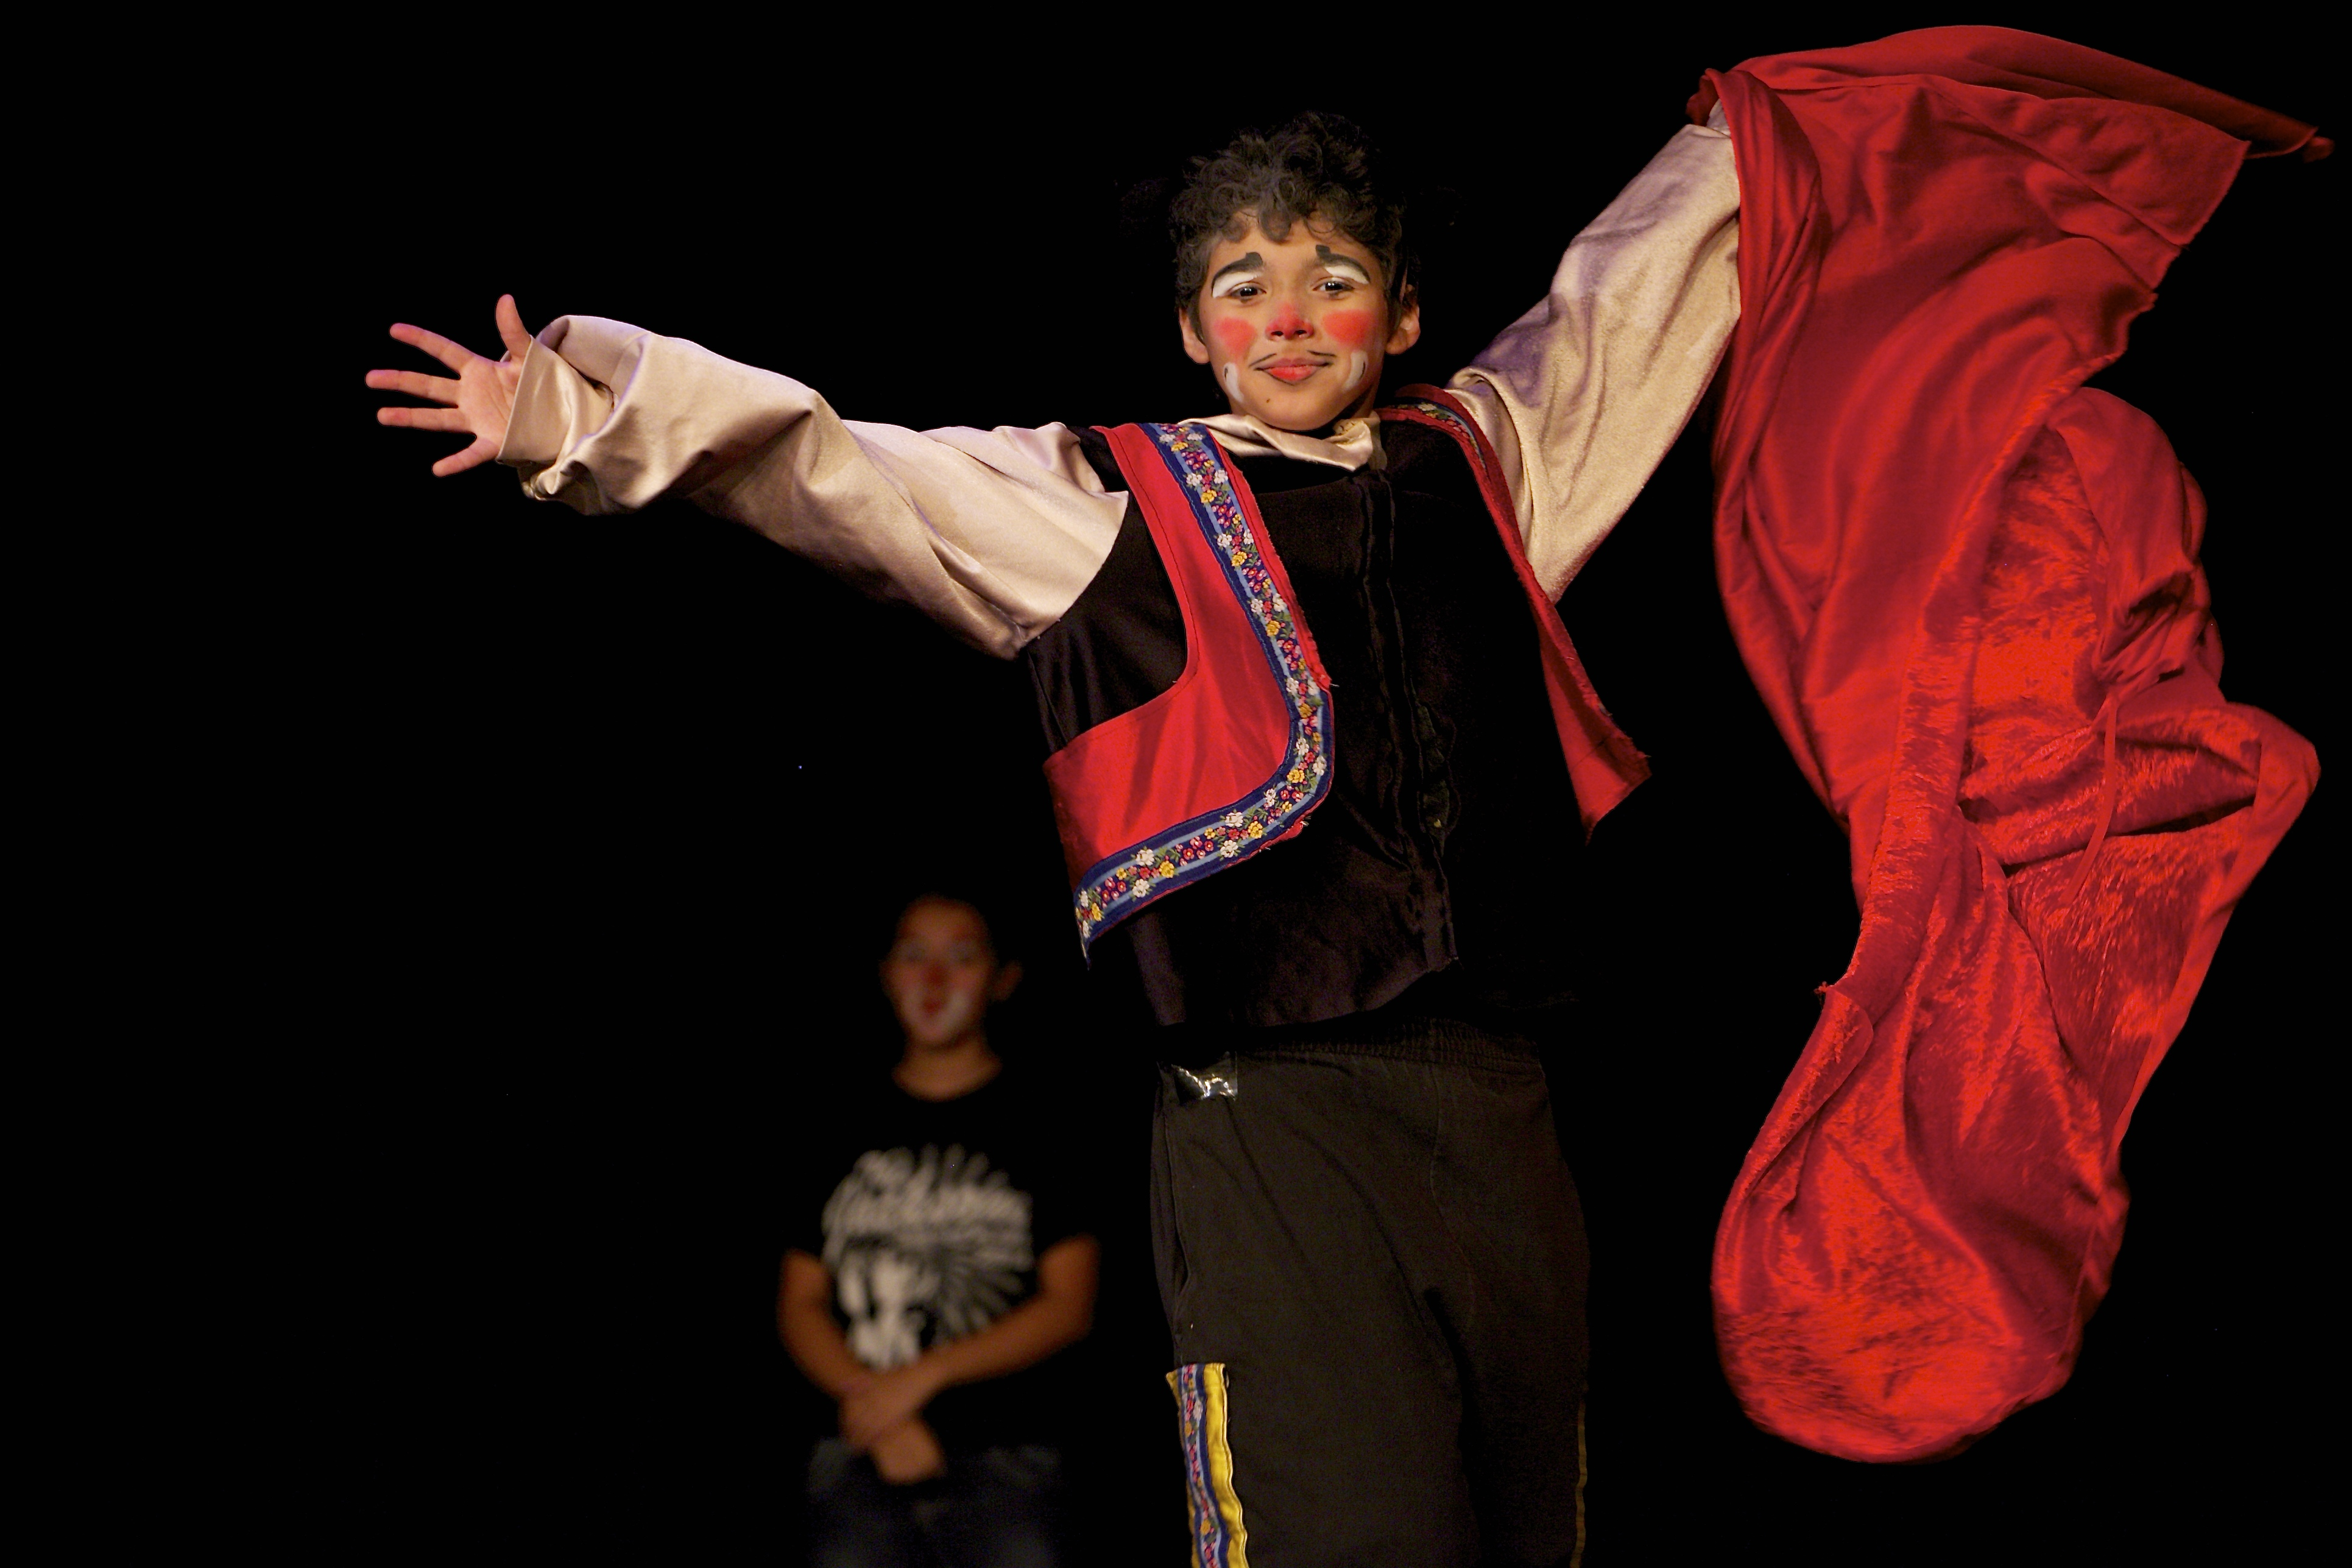 Circus Camp 2014 . Guadalupe Theater-Bullfighter Gag